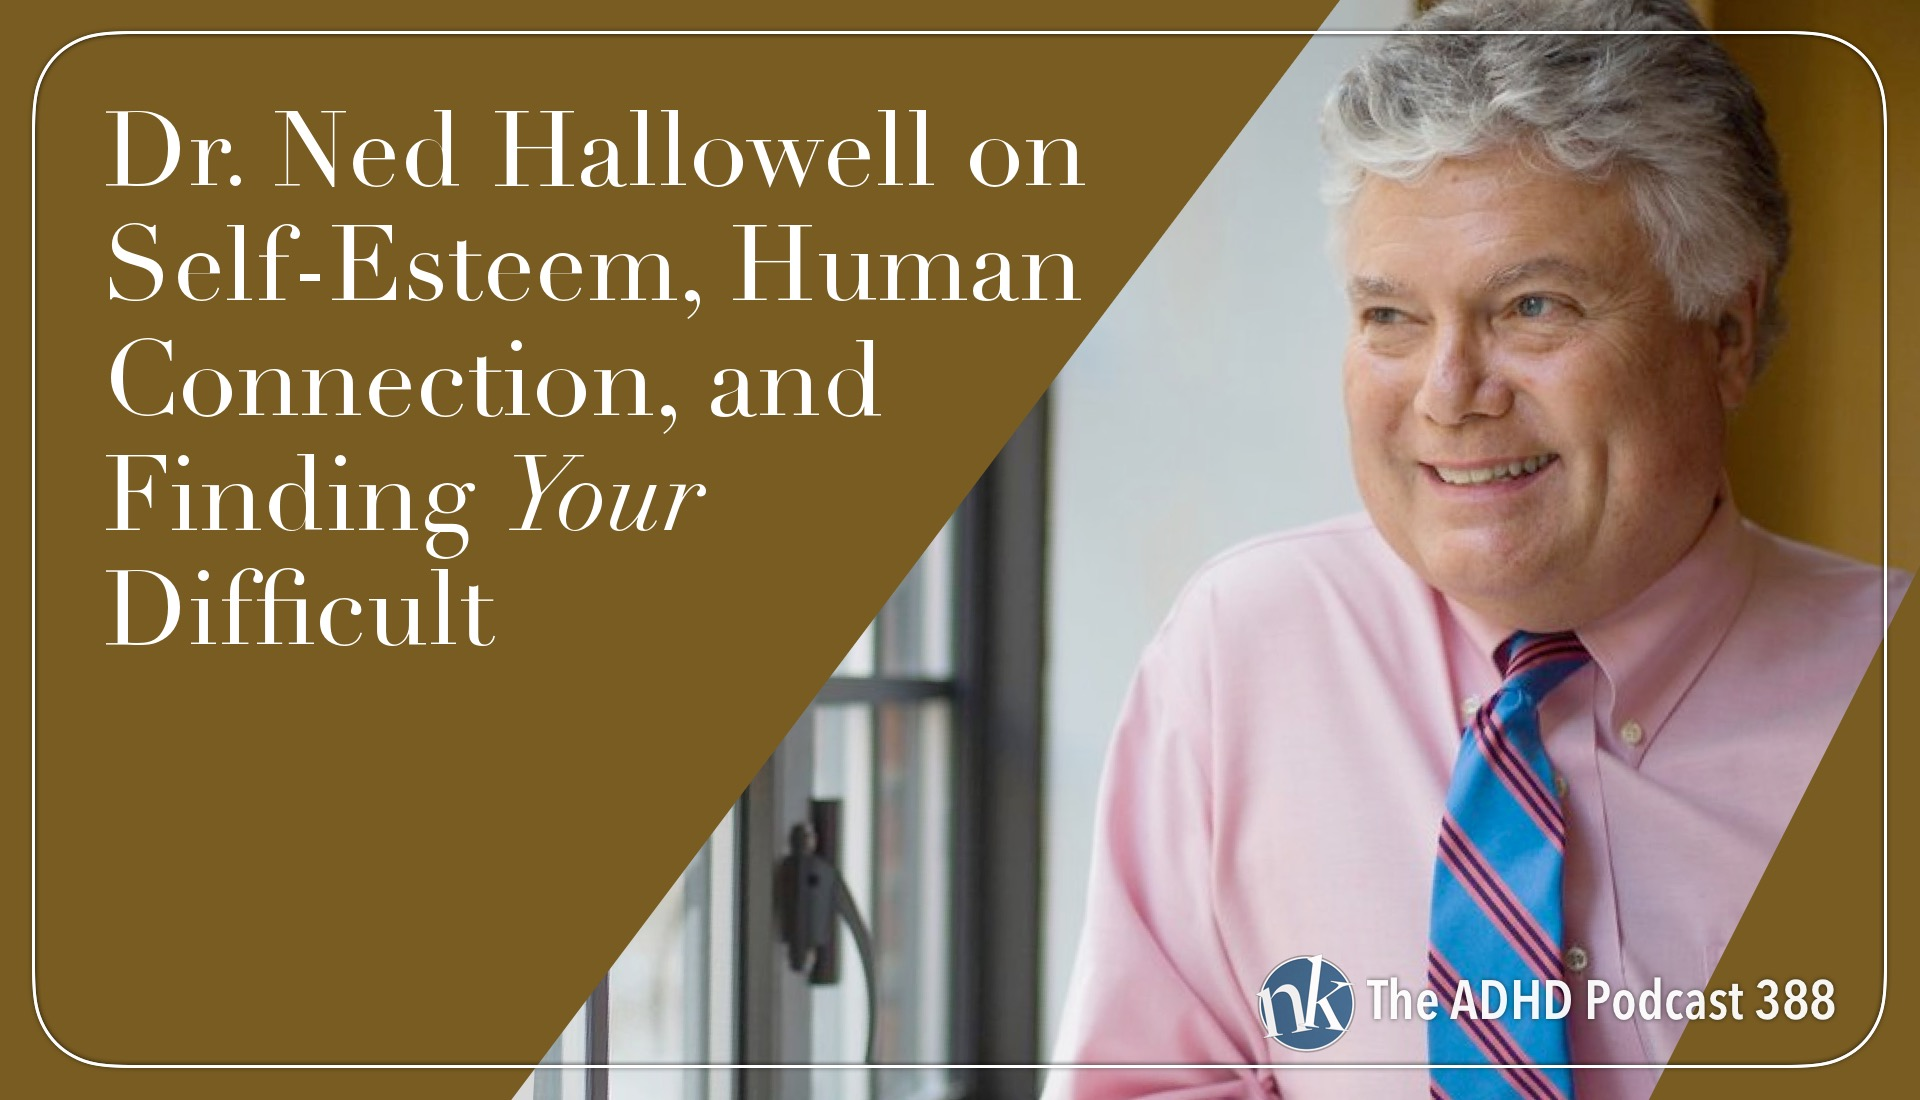 Dr. Ned Hallowell on Self-Esteem, Human Connection, and Finding Your Difficult